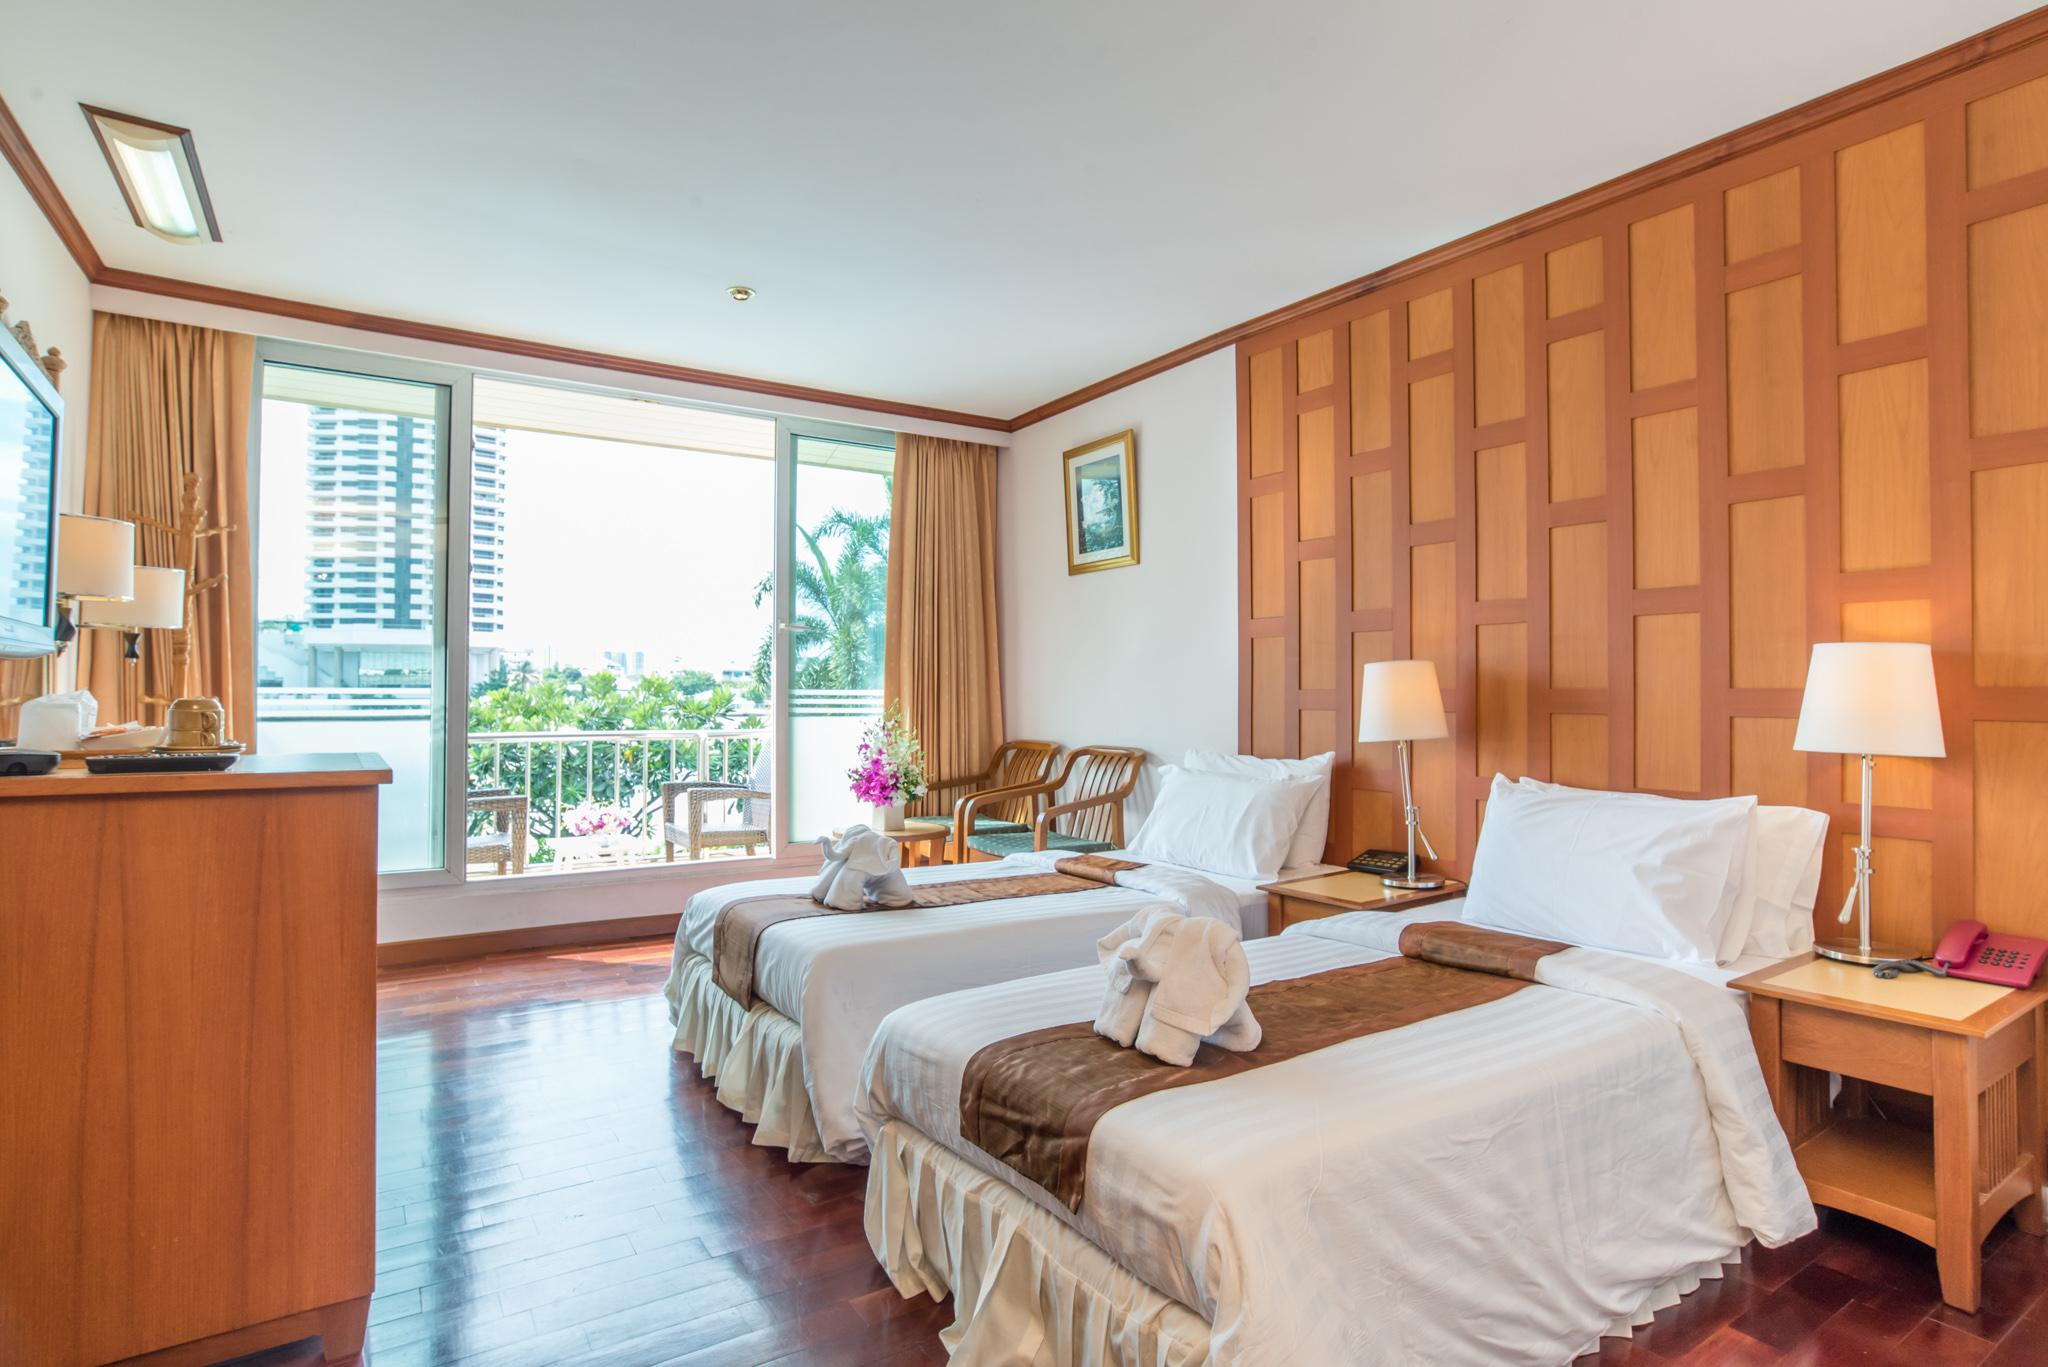 Deluxe hướng sông 2 giường (Deluxe River View Twin)